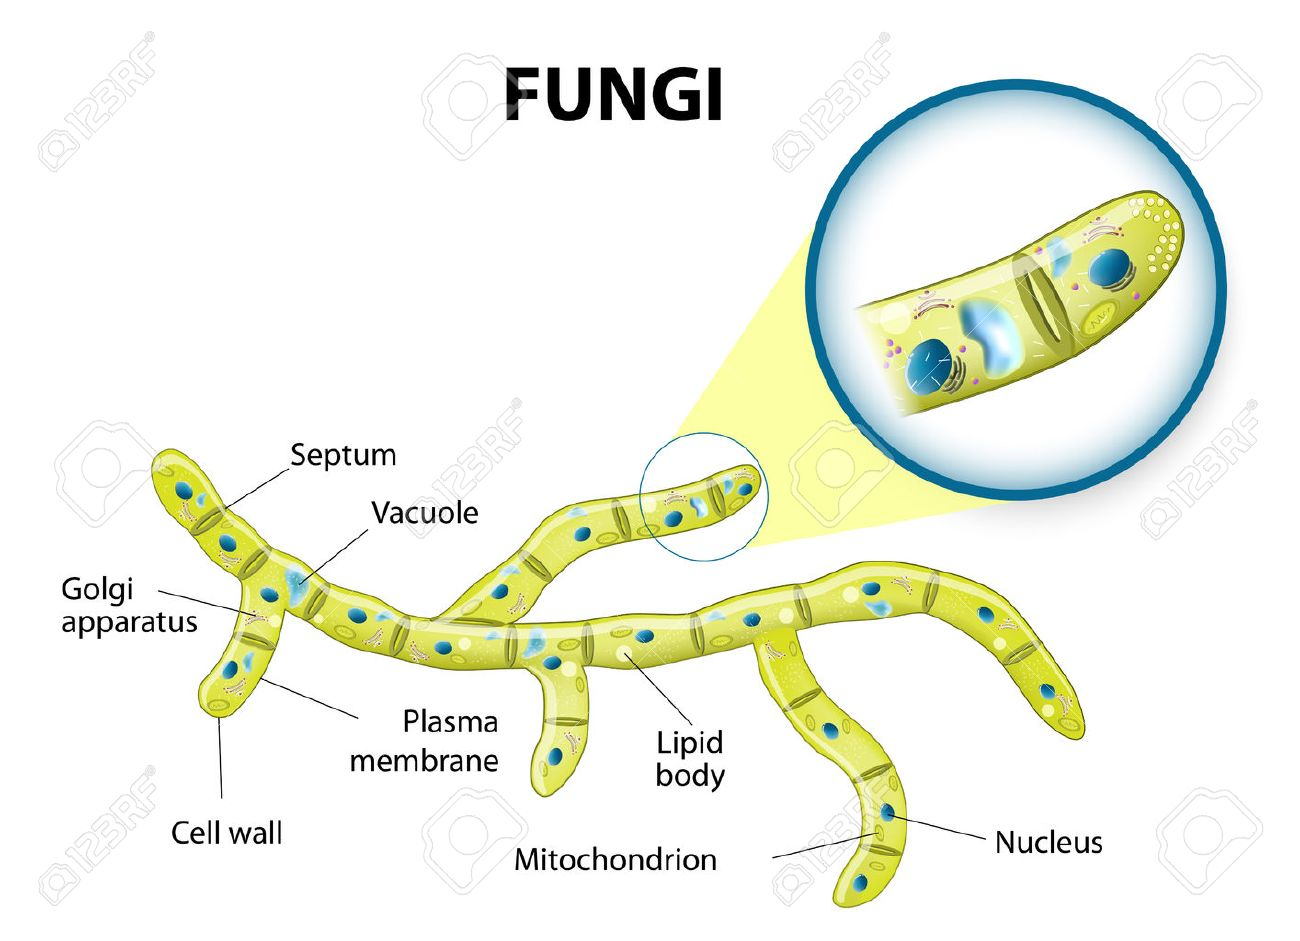 Typical fungi cell fungal hyphae structure fungi diagram typical fungi cell fungal hyphae structure fungi diagram illustrating the ultrastructure of a ccuart Images